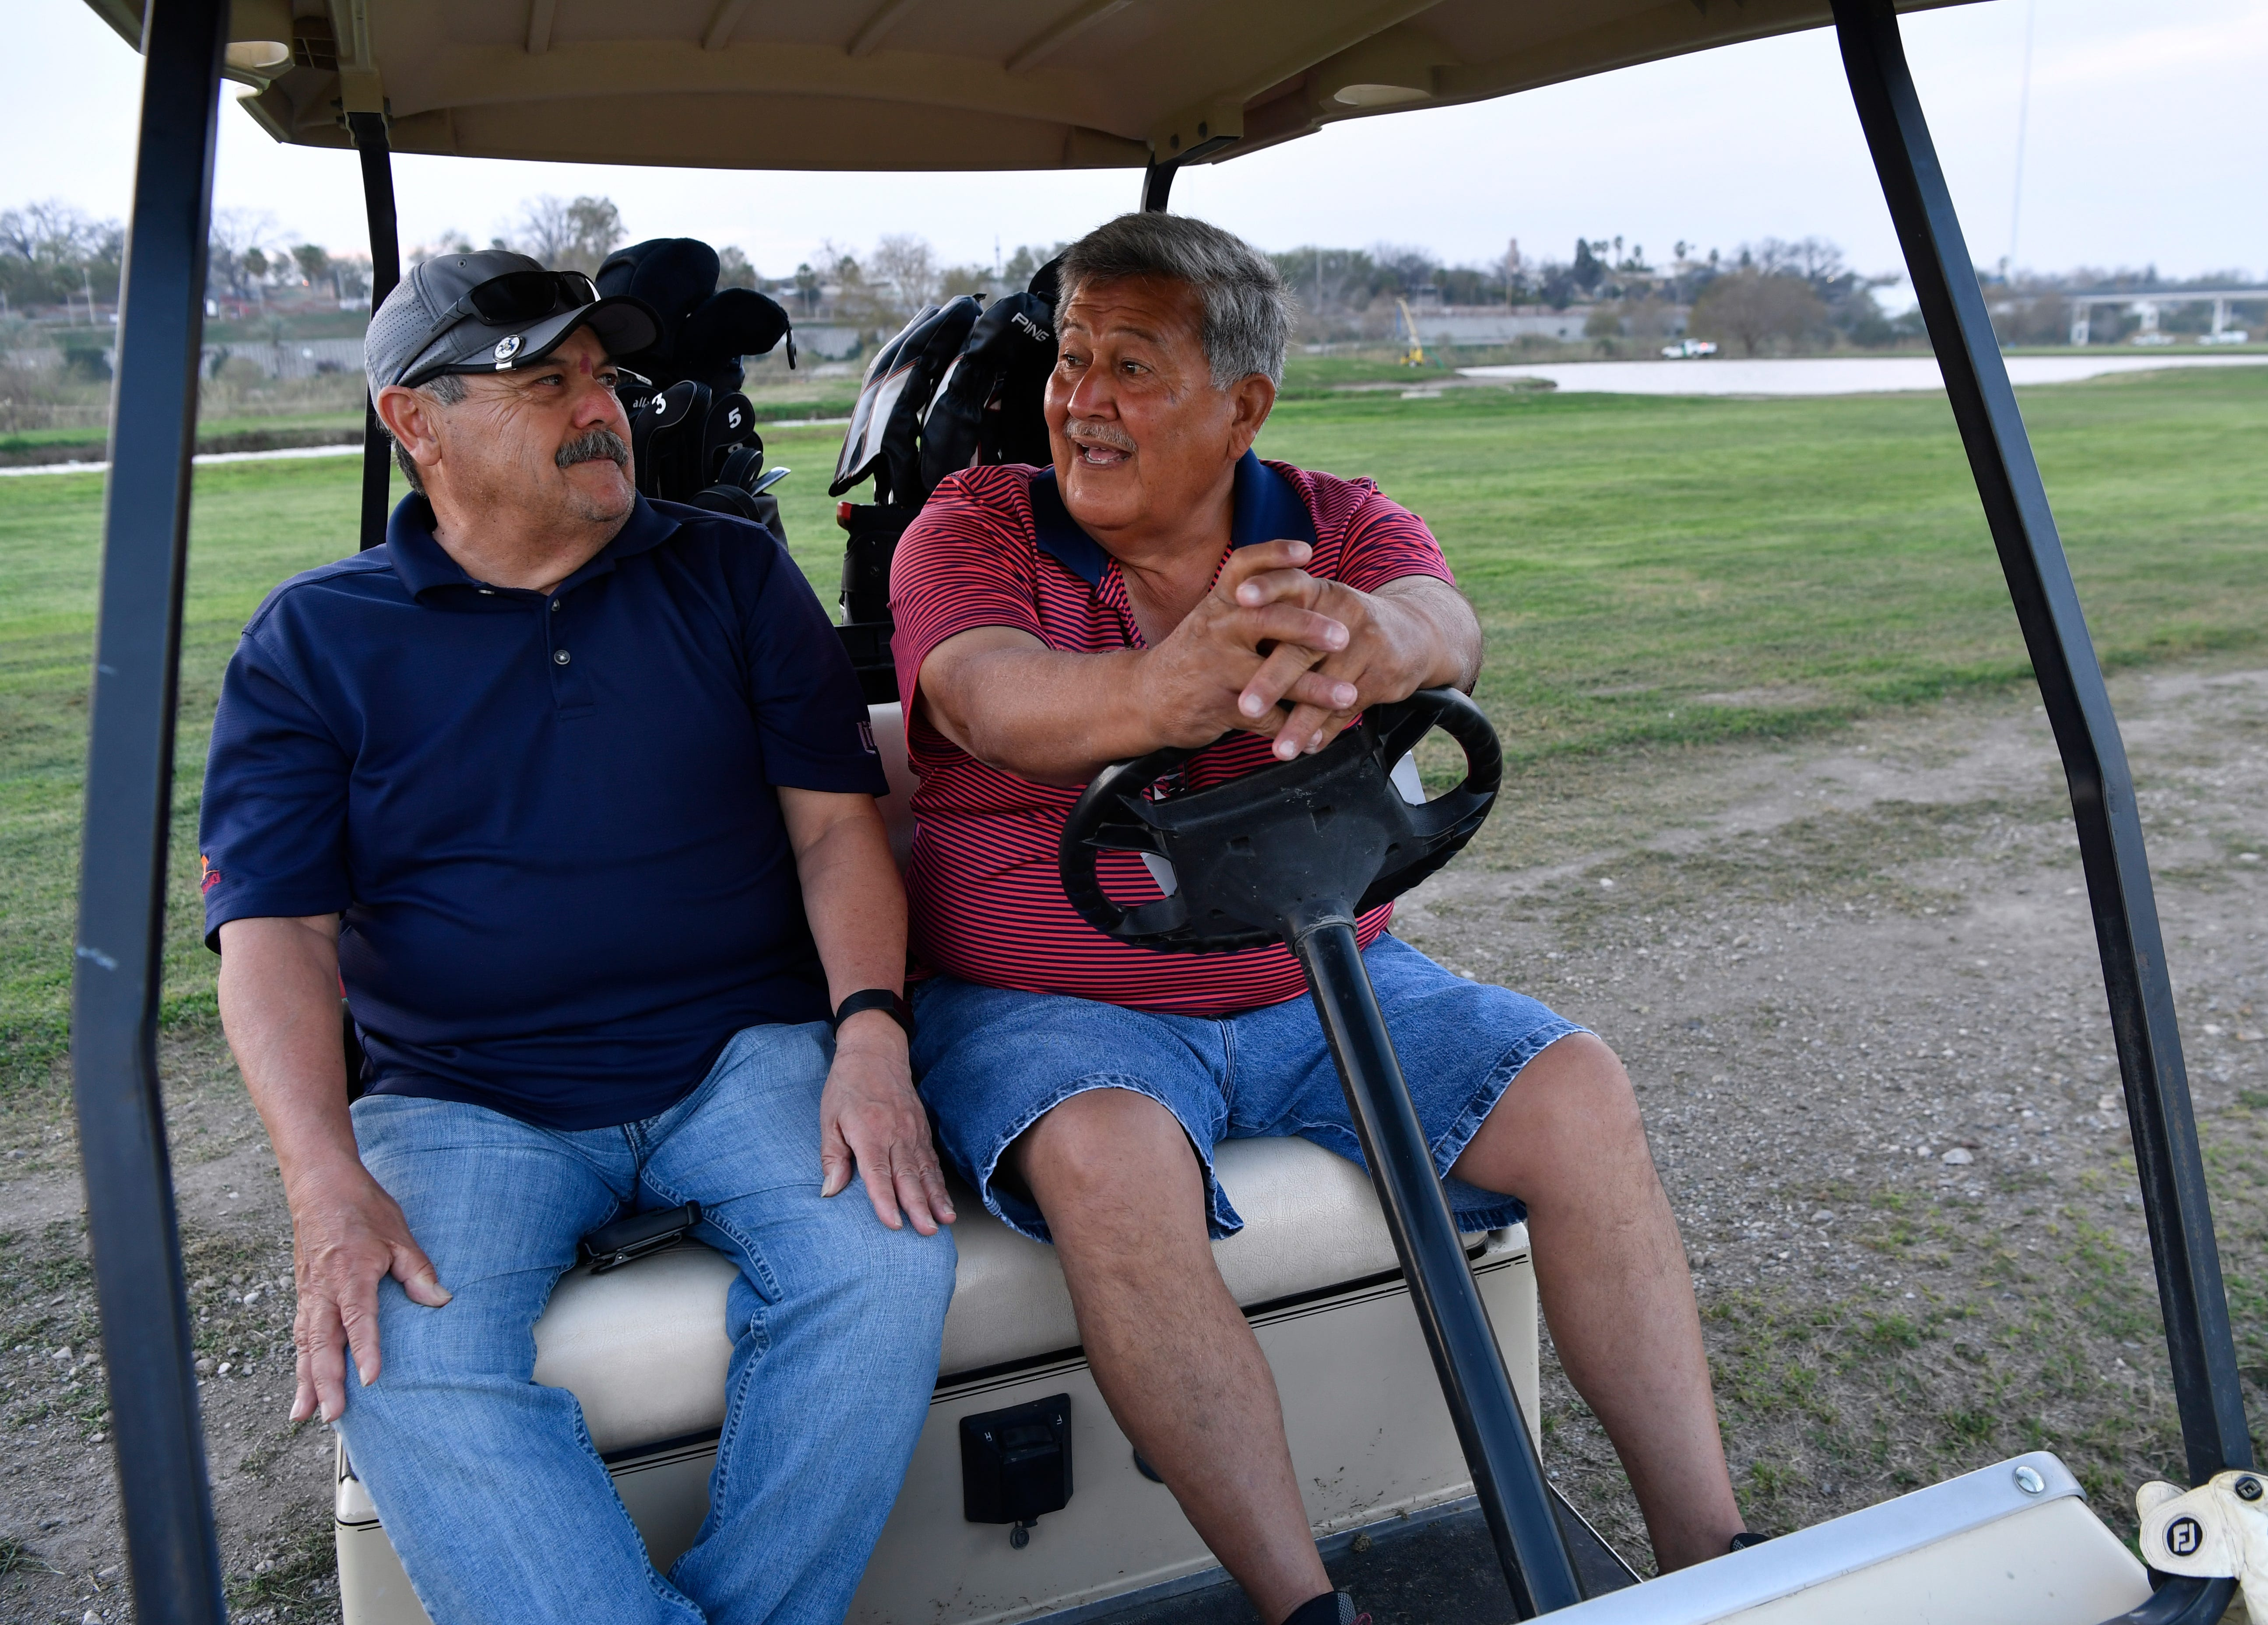 Gus Jimenez (left) and Rudy Muniz said Wednesday Feb. 6, 2019 that they've seen migrants cross the golf course between the Eagle Pass and Camino Real international bridges. A caravan of Central American migrants has arrived in Piedras Negras and border law enforcement officials have increased their presence in response.